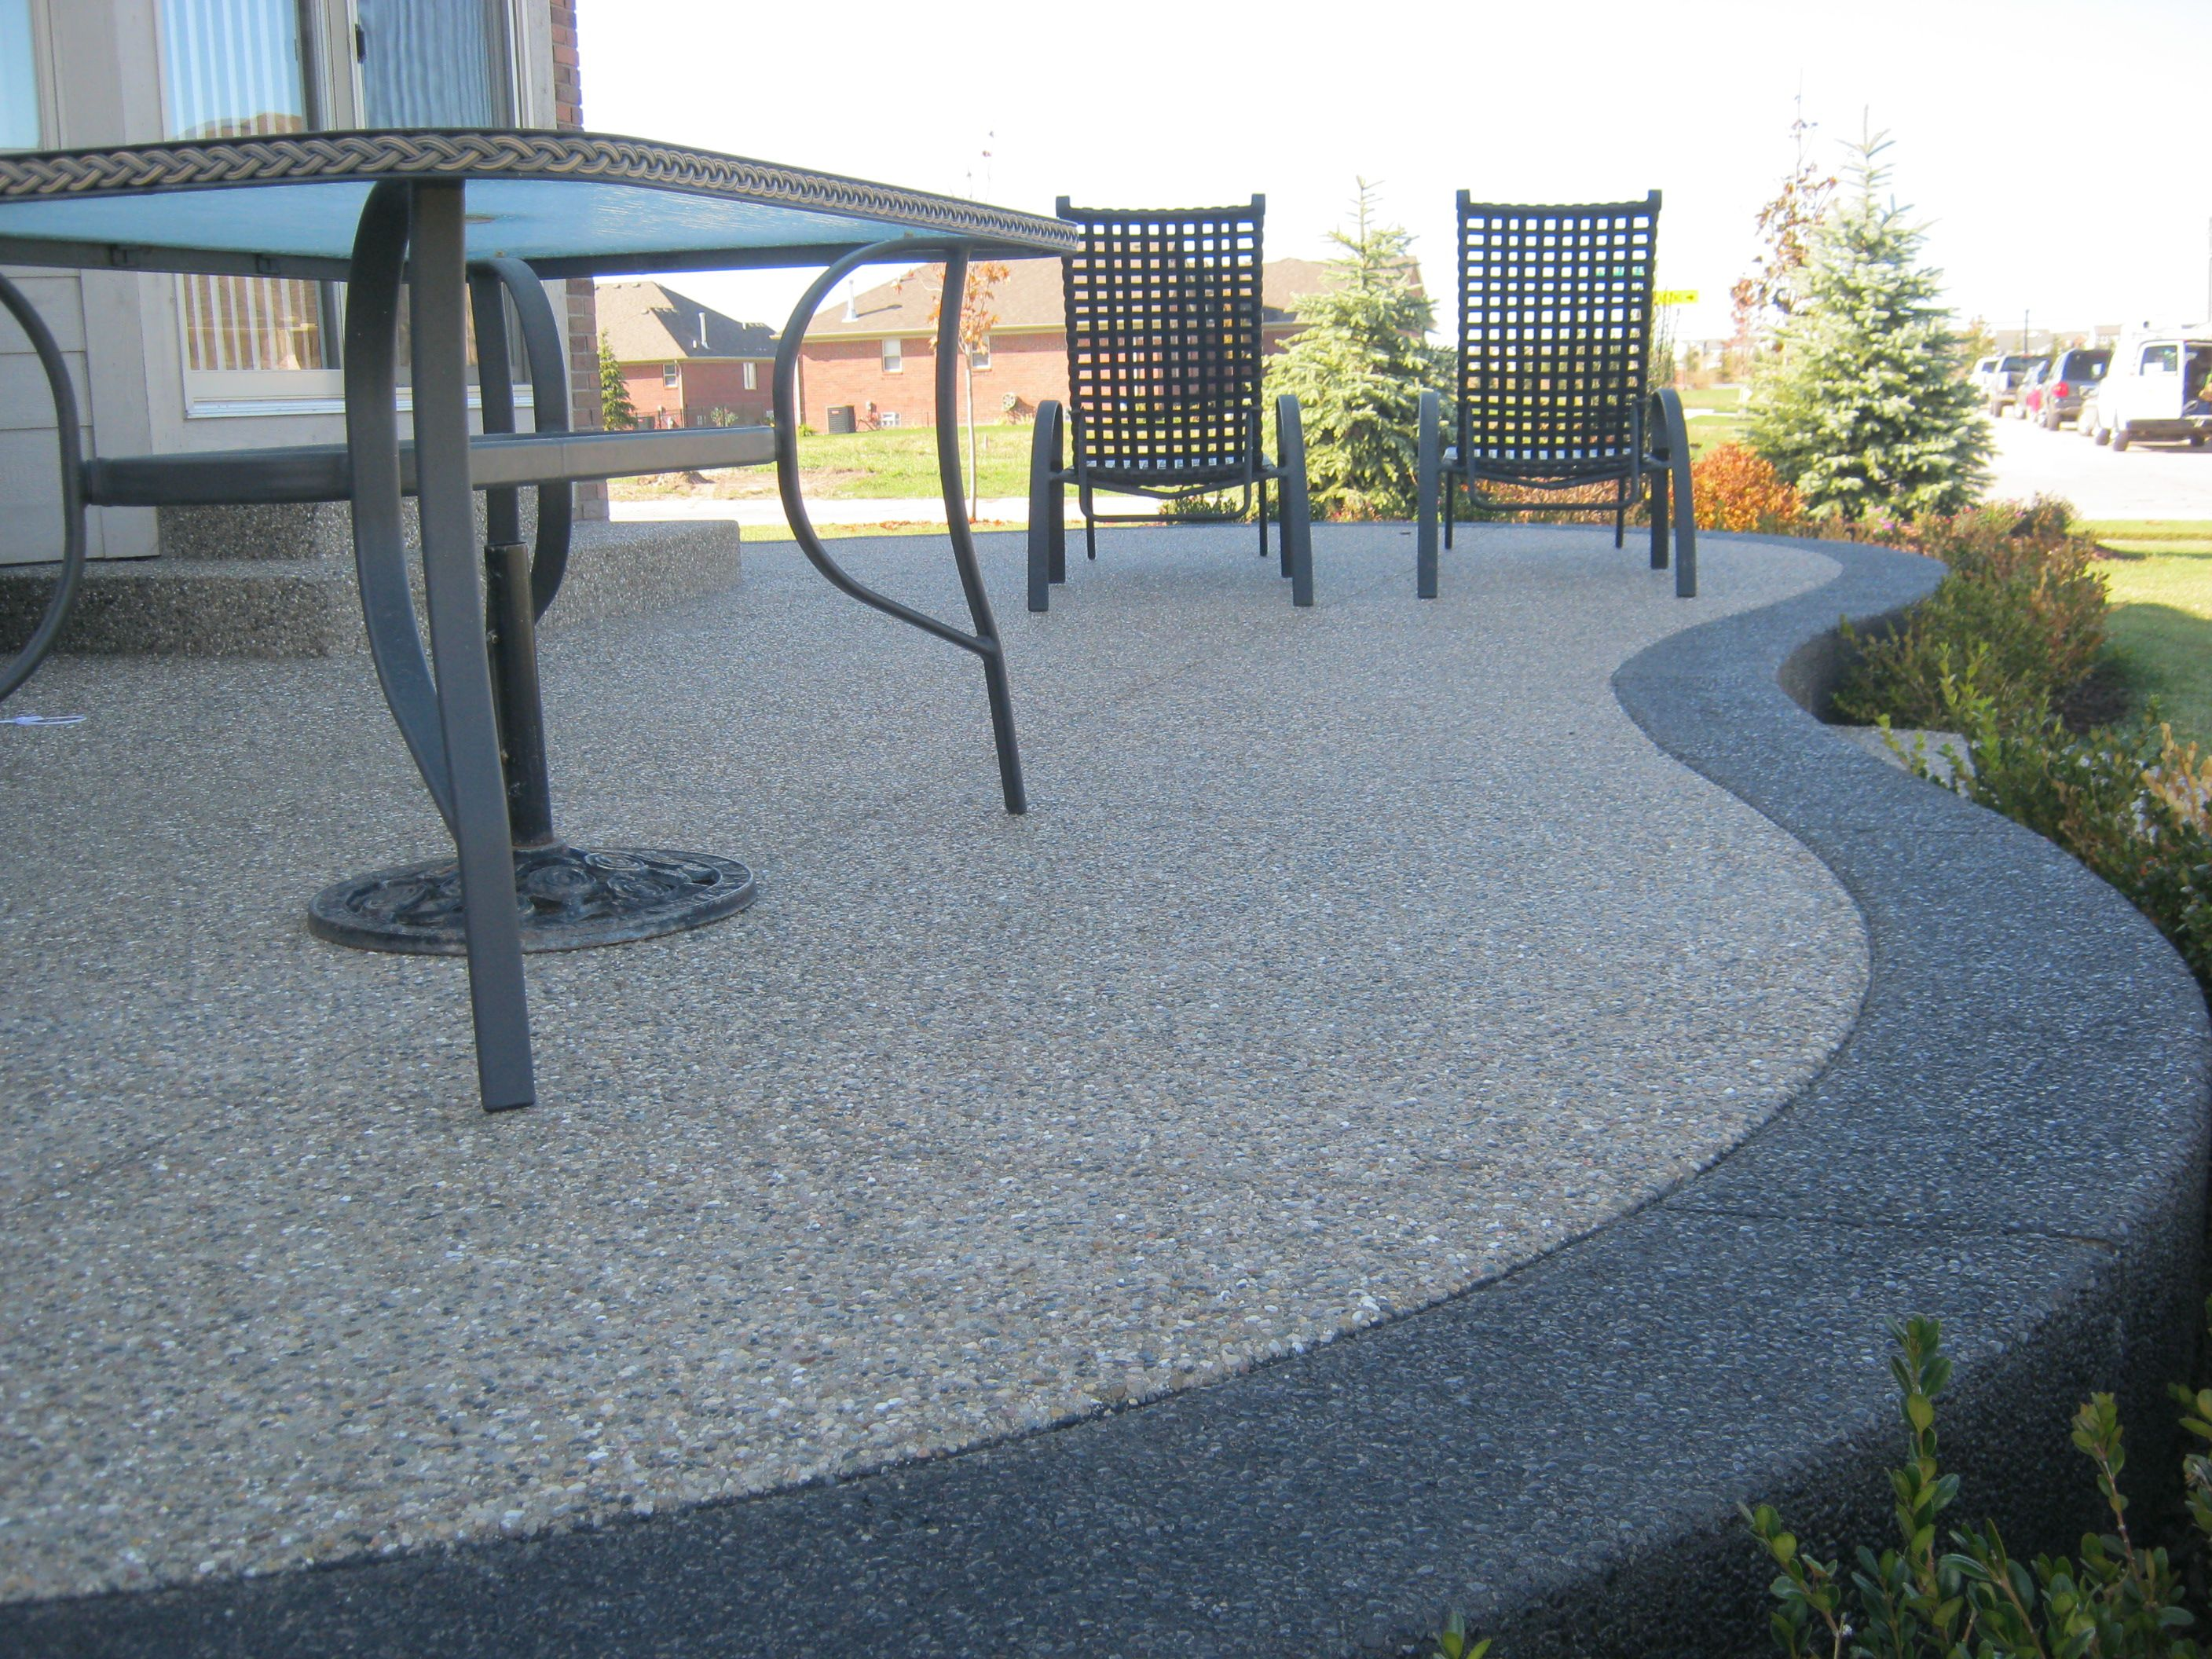 Exposed Aggregate   Traditional Color Inset With Black #aggregate Band.  #concrete